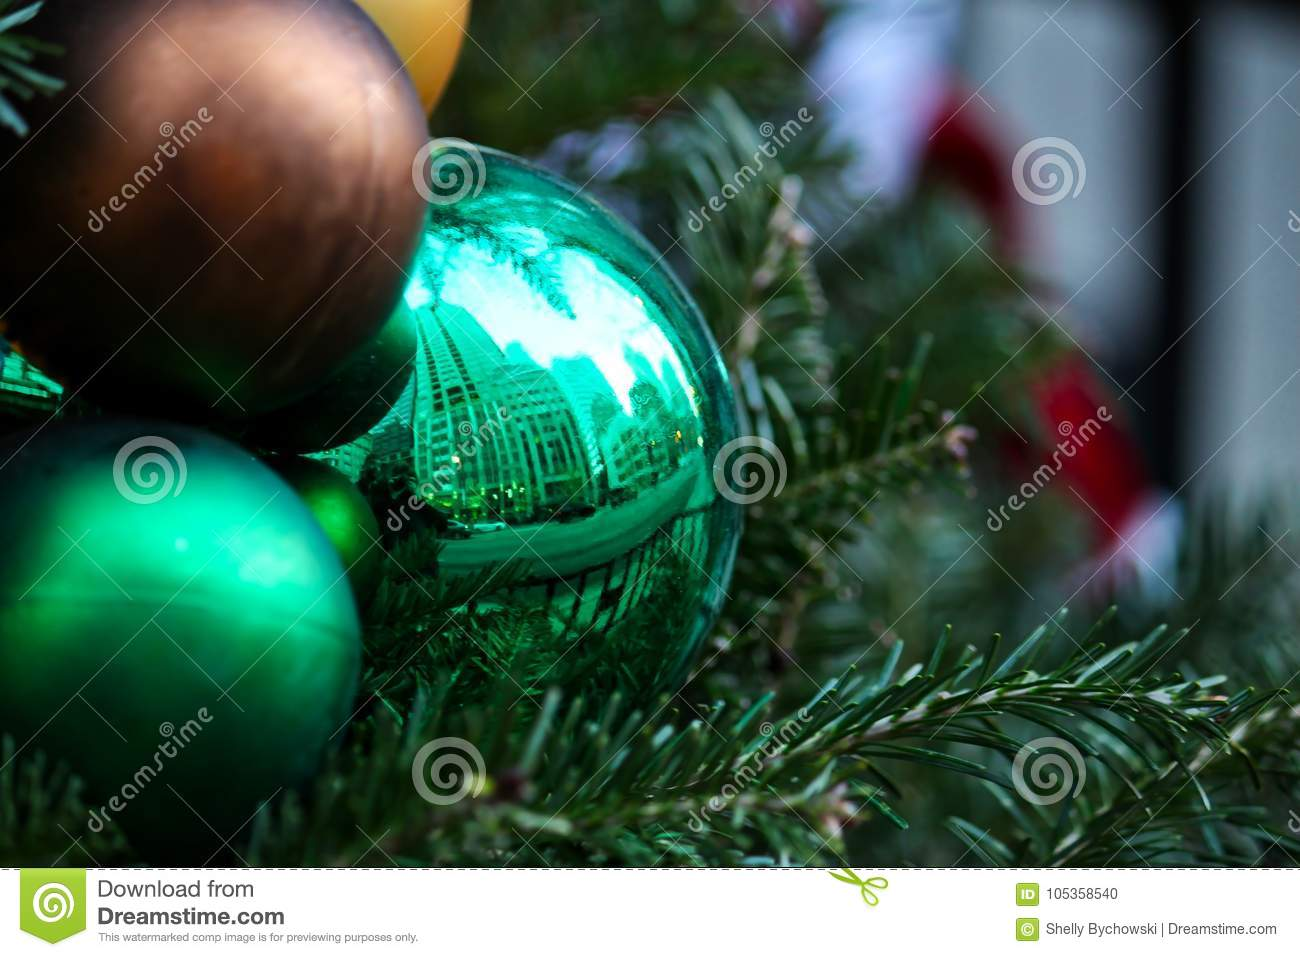 Christmas Tree Downtown Chicago.Christmas Ornaments On Tree In Downtown Chicago With